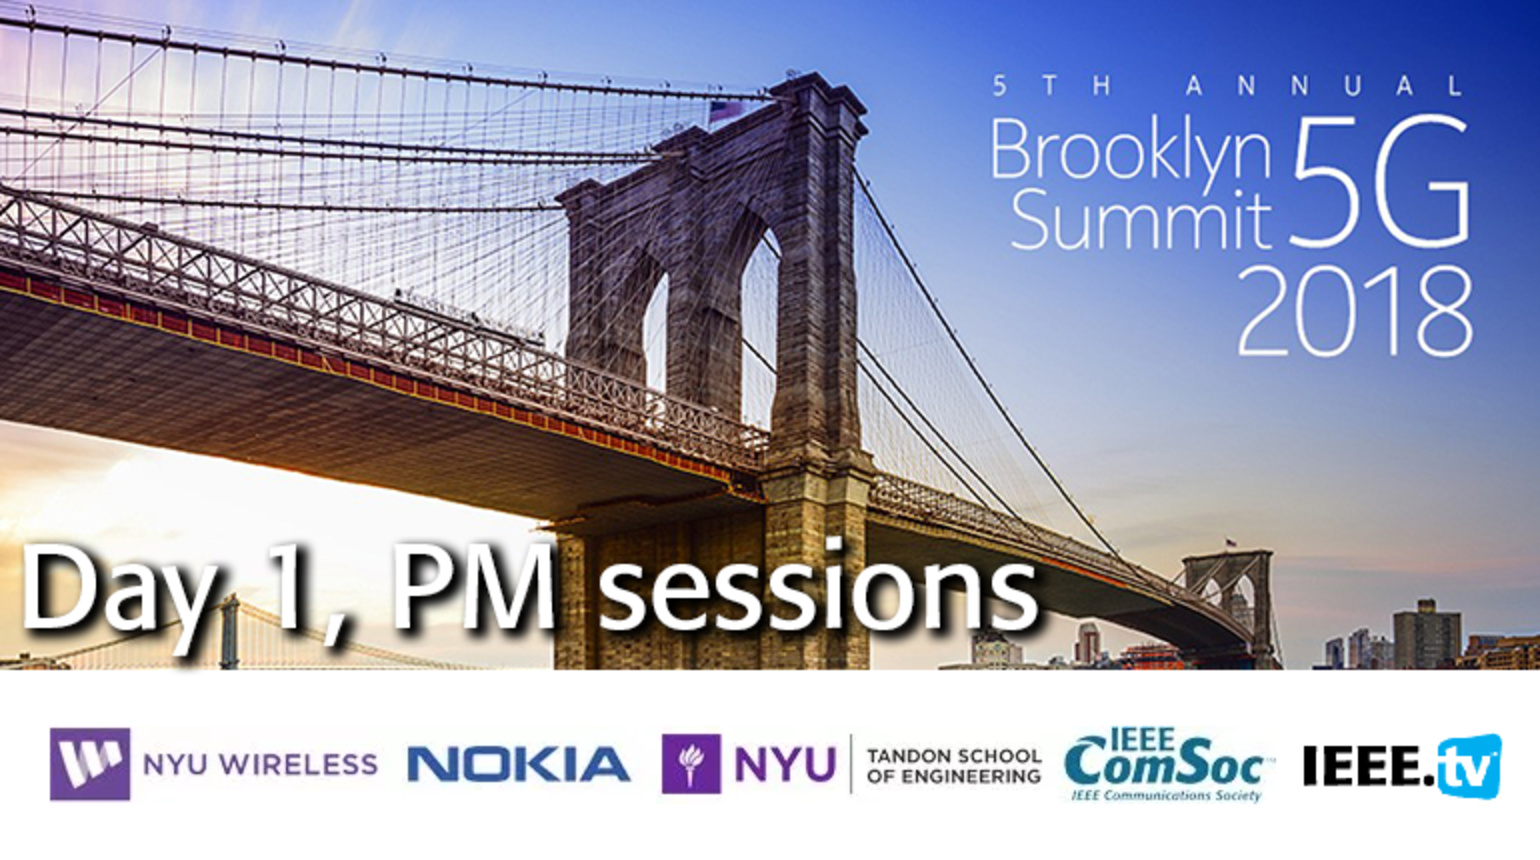 Day 1, PM Sessions Part 1- Brooklyn 5G Summit 2018